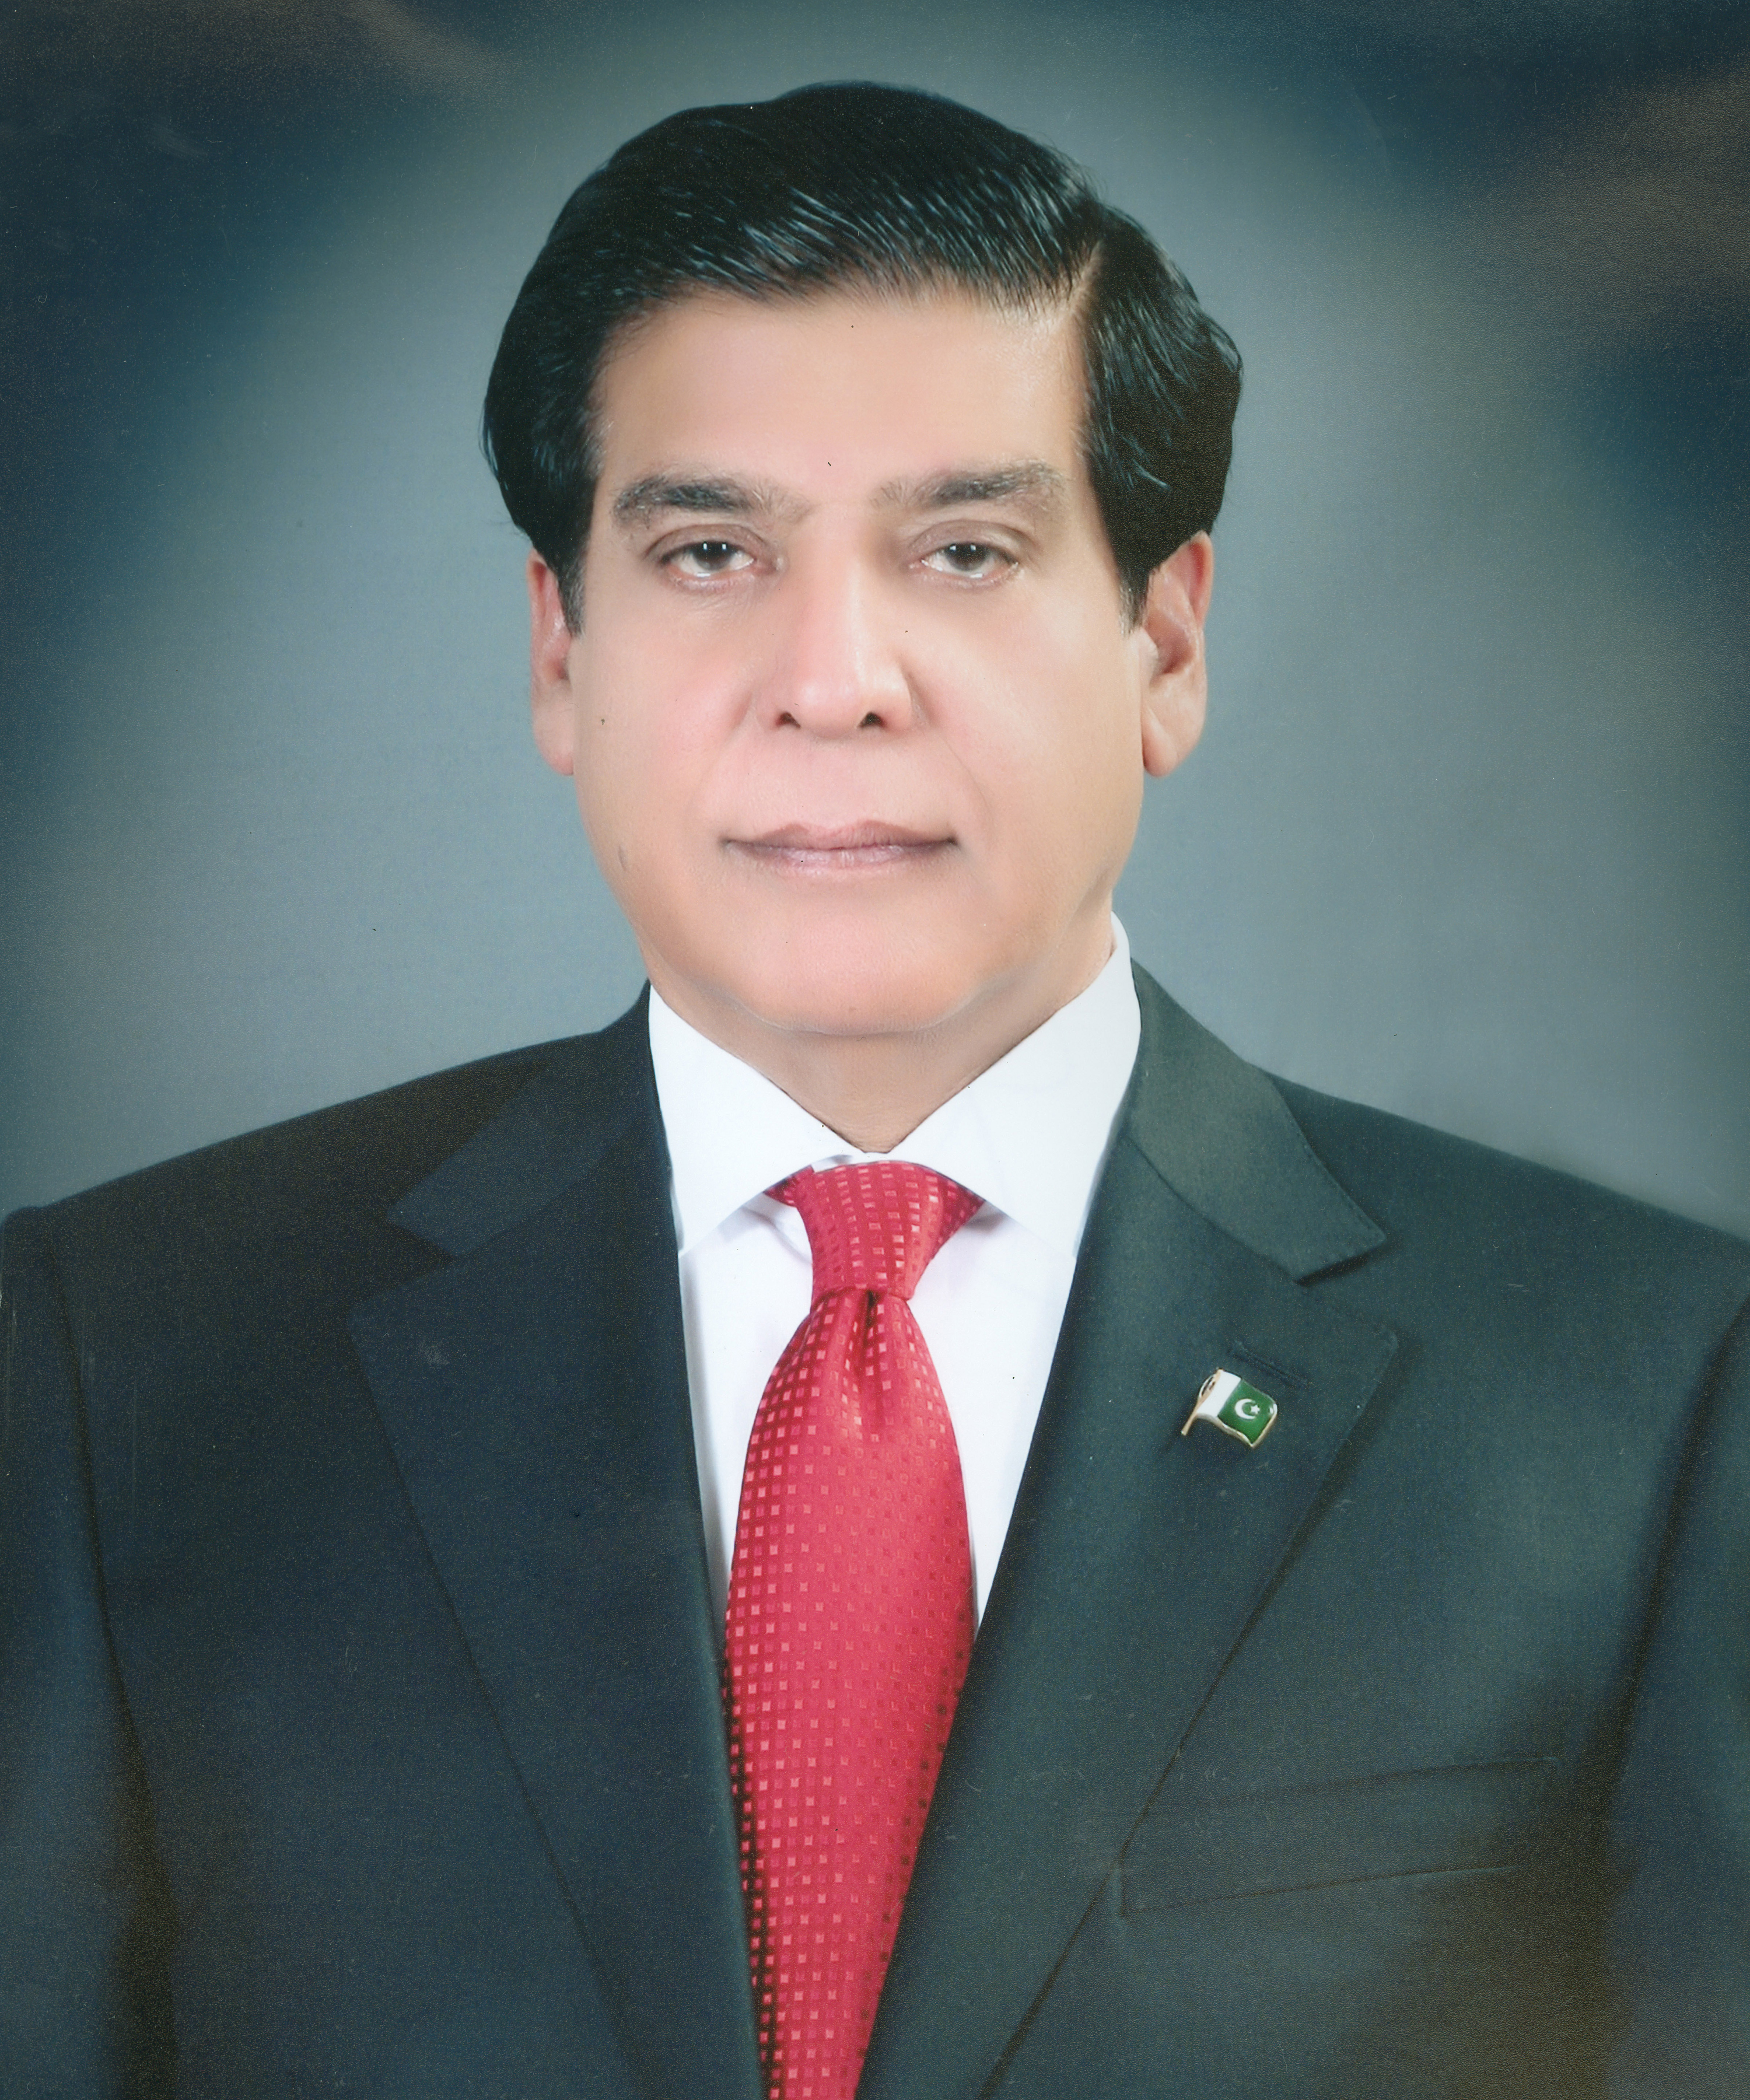 Message of Raja Pervez Ashraf Prime Minister of Pakistan On the World Polio Day (October 24, 2012)